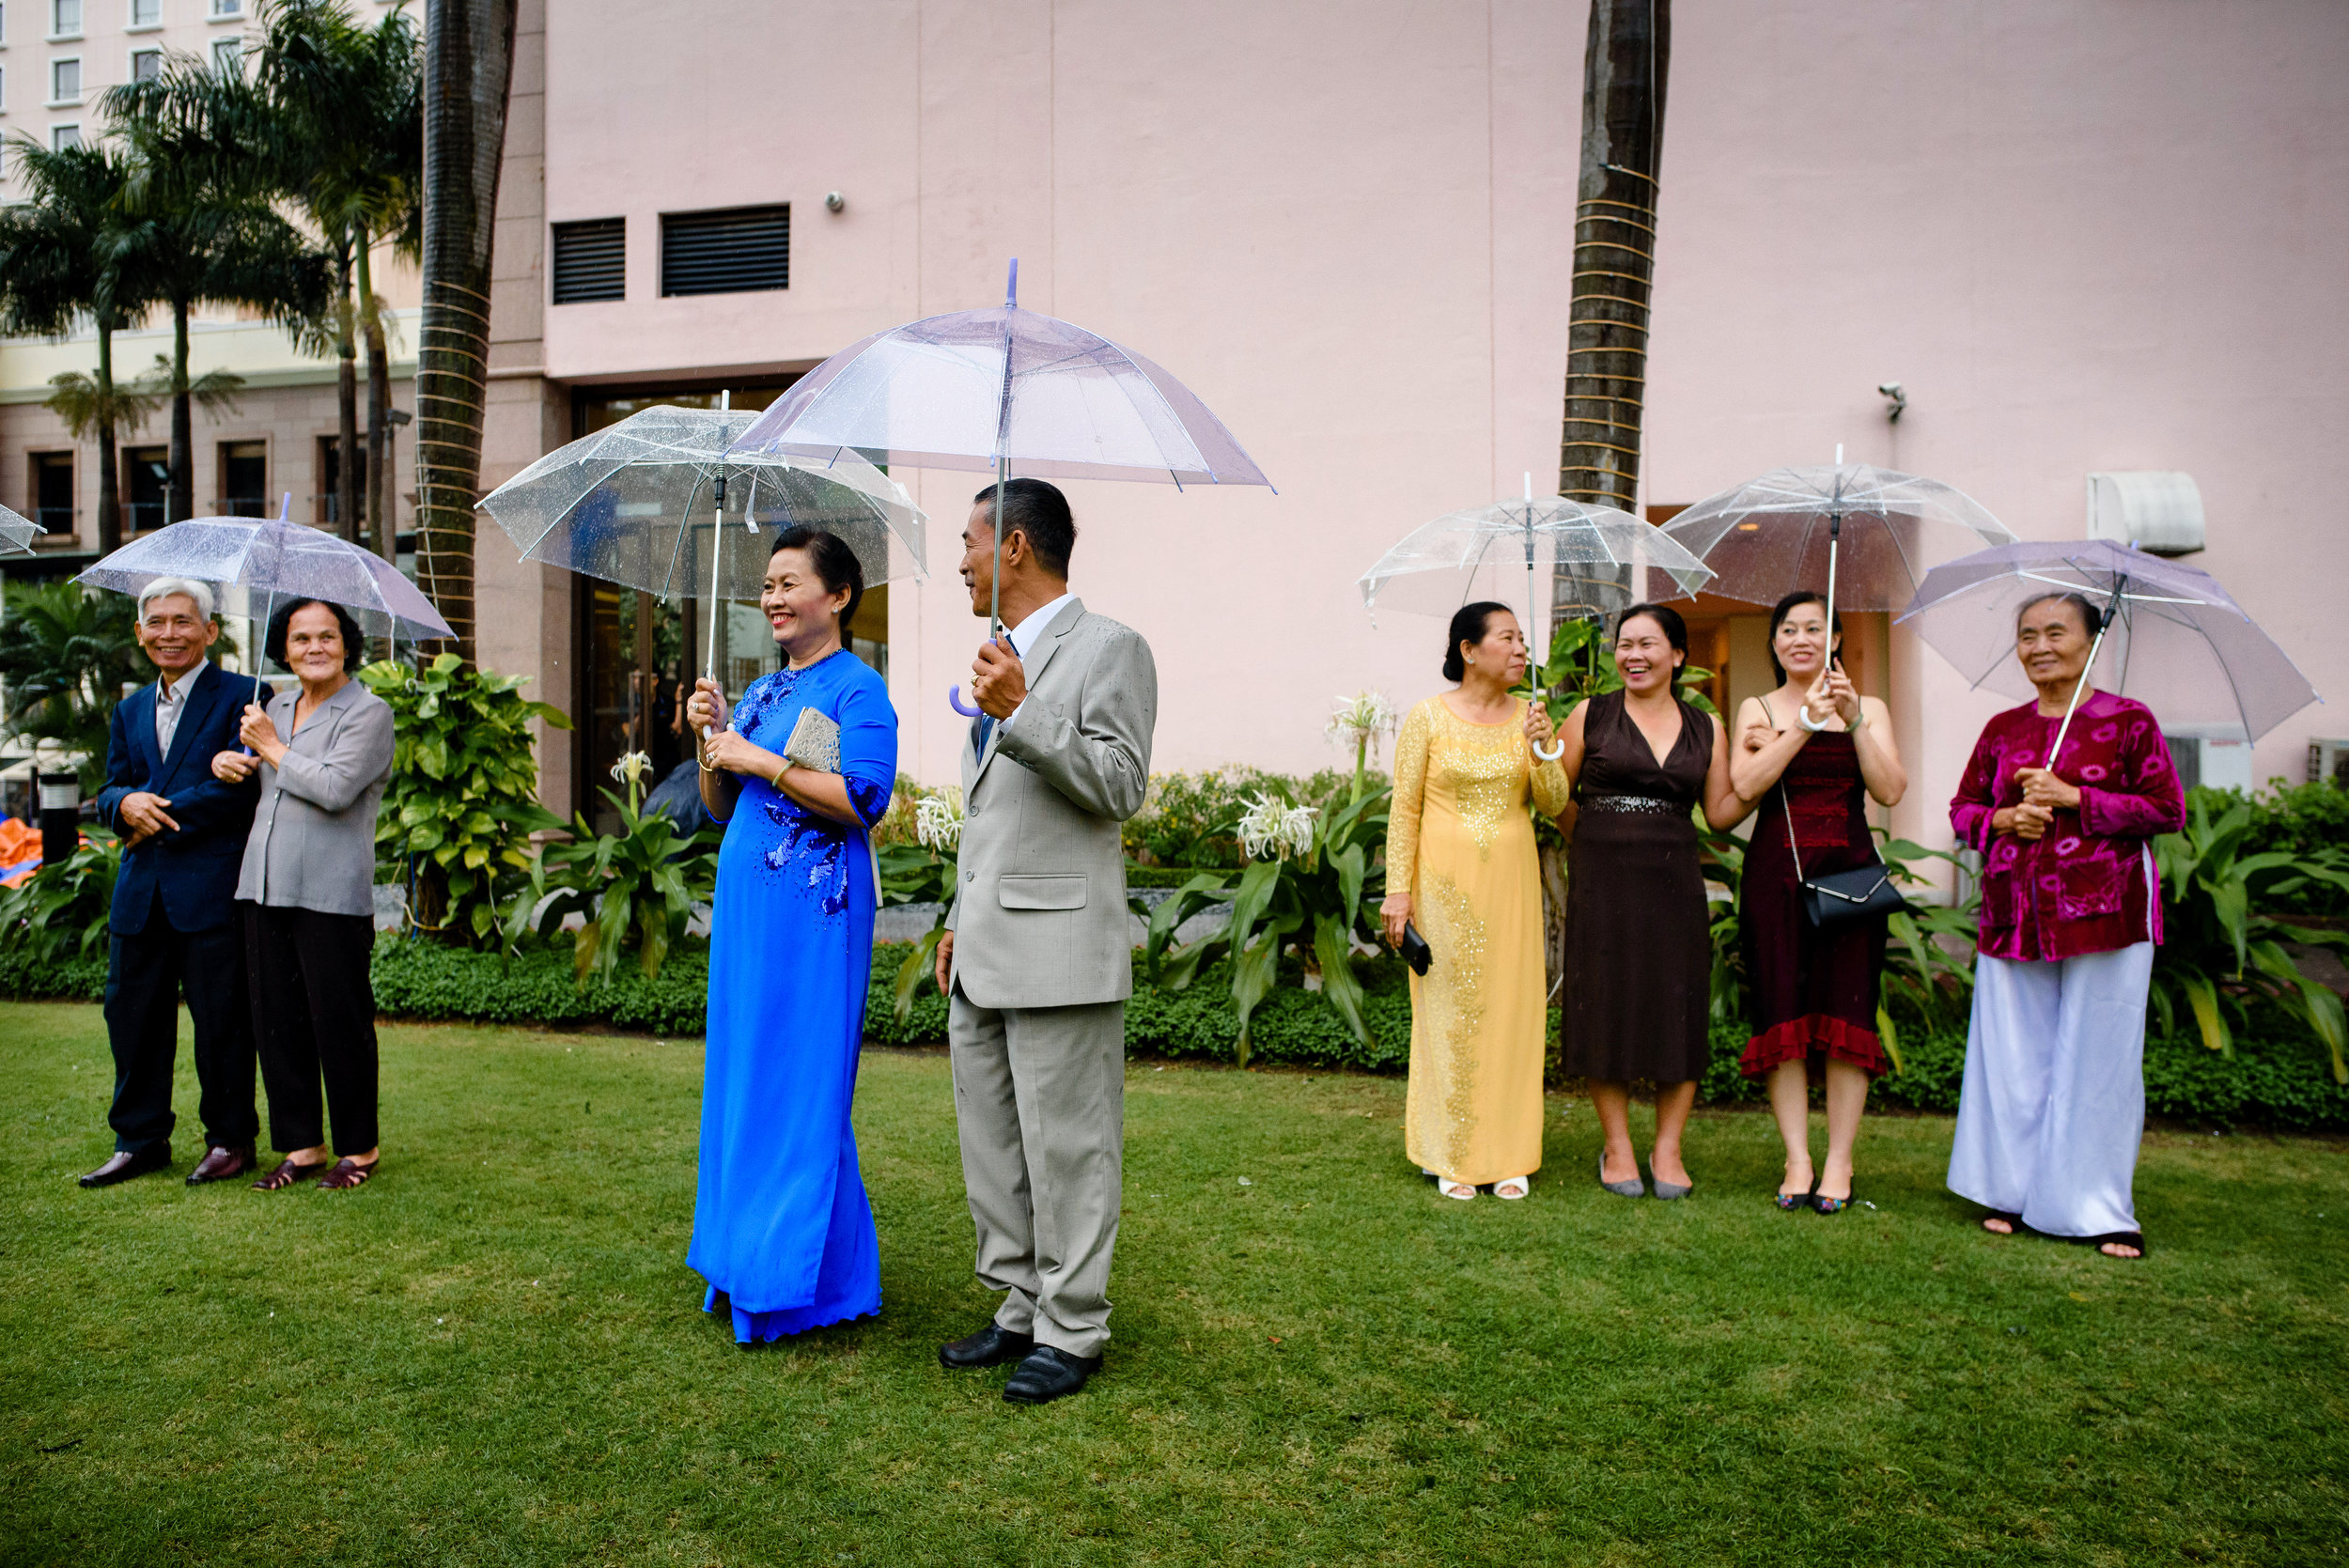 Jon-Hieu-wedding-legend-hotel-saigon-043.JPG